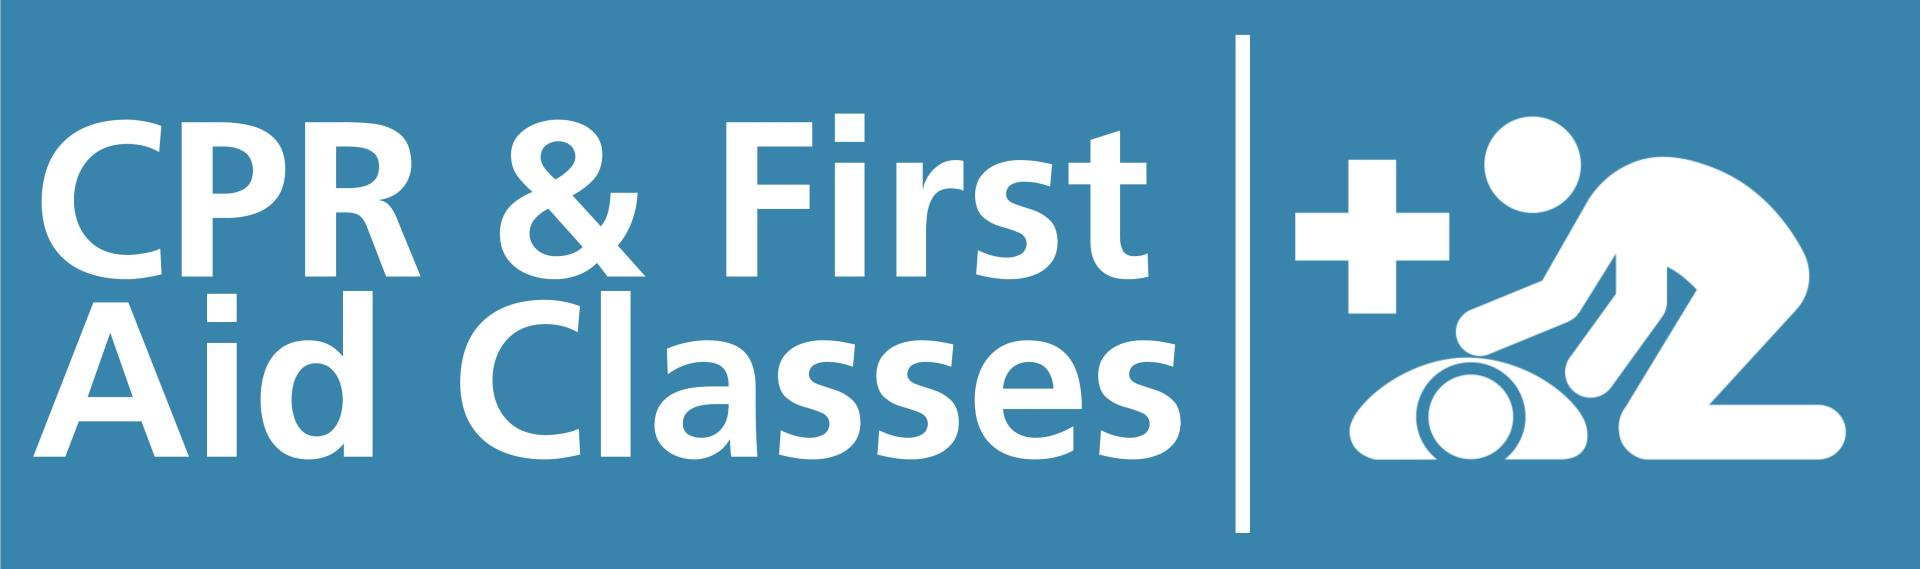 Cpr First Aid Classes Dare County Nc